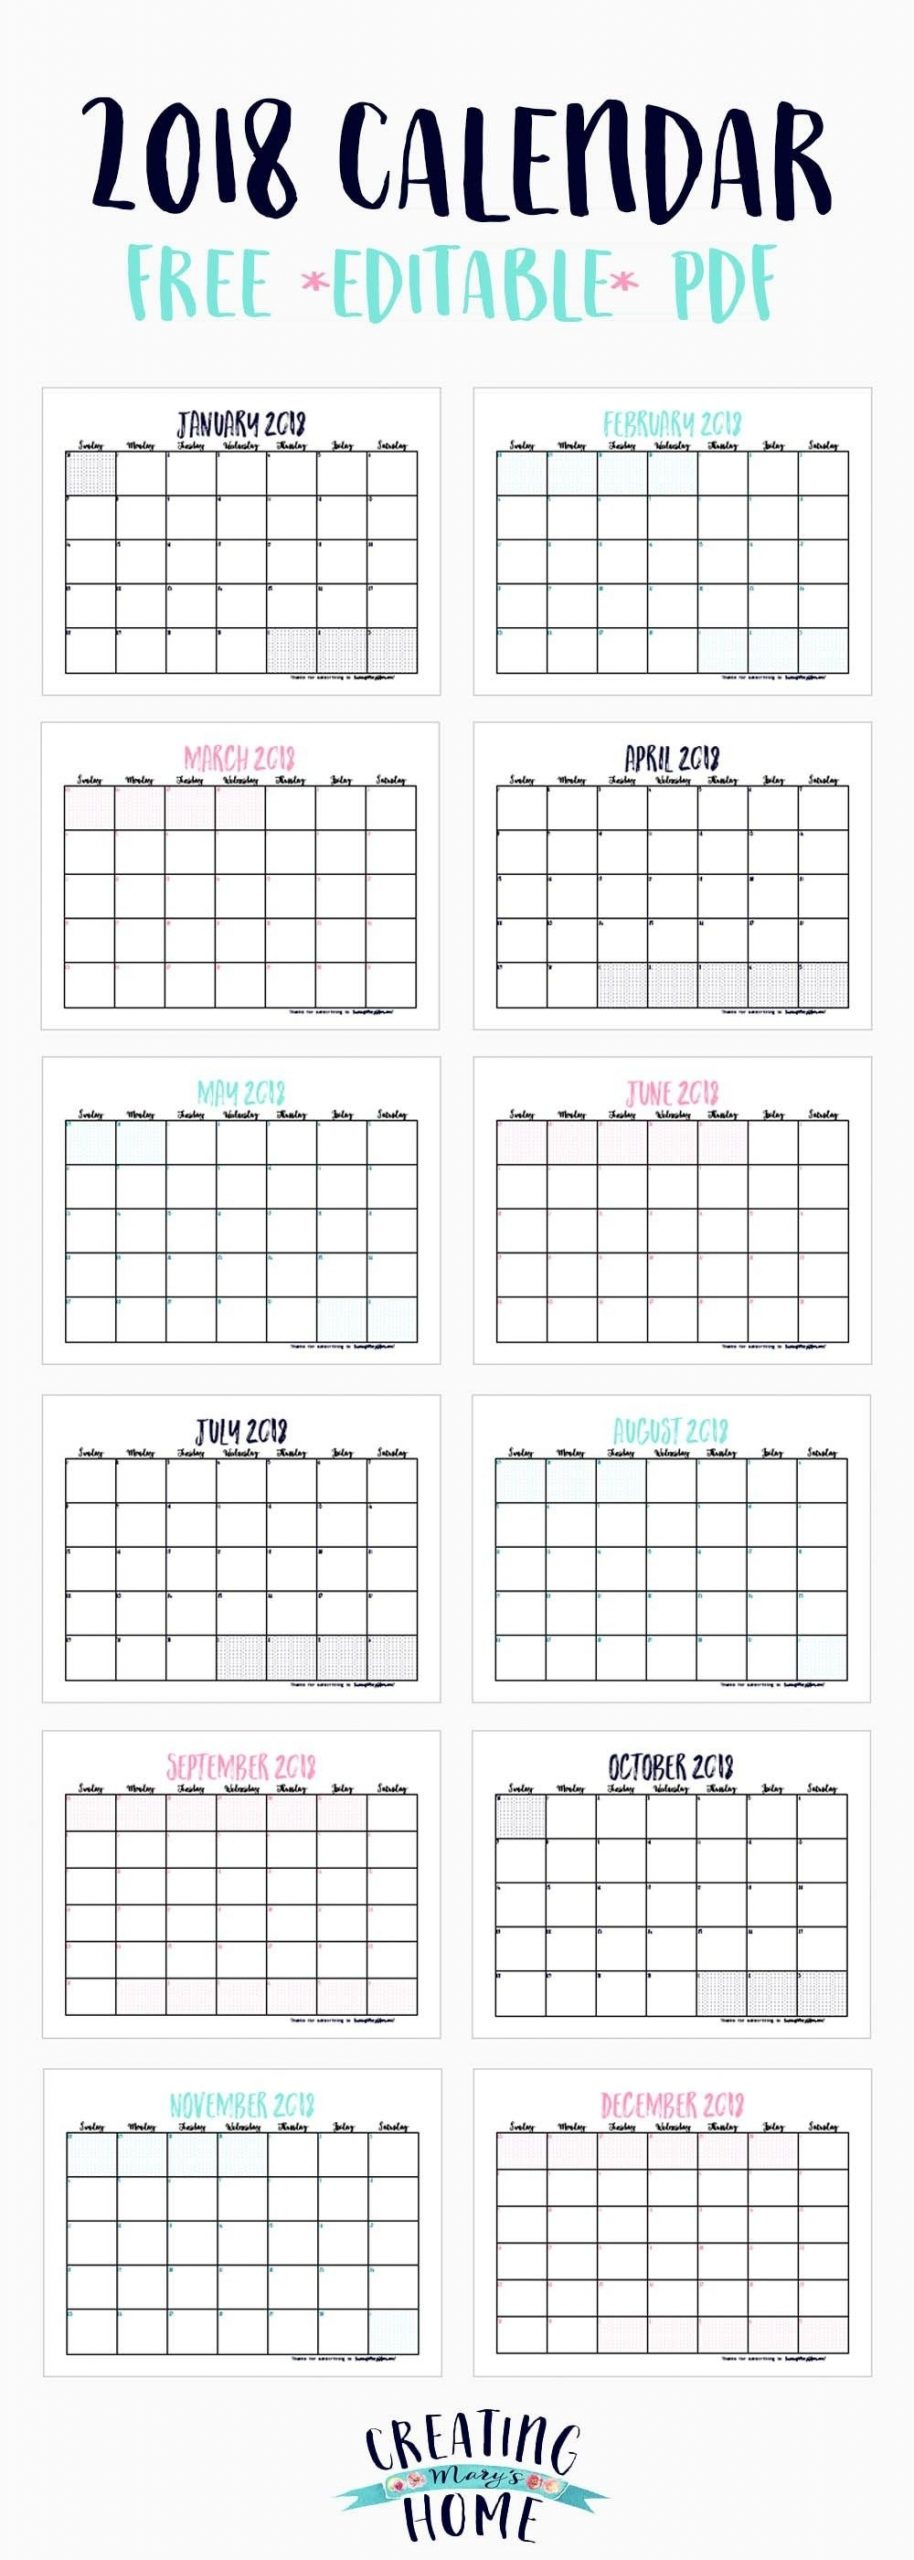 Free 2018 Calendar (*Editable Pdf (With Images) | Free